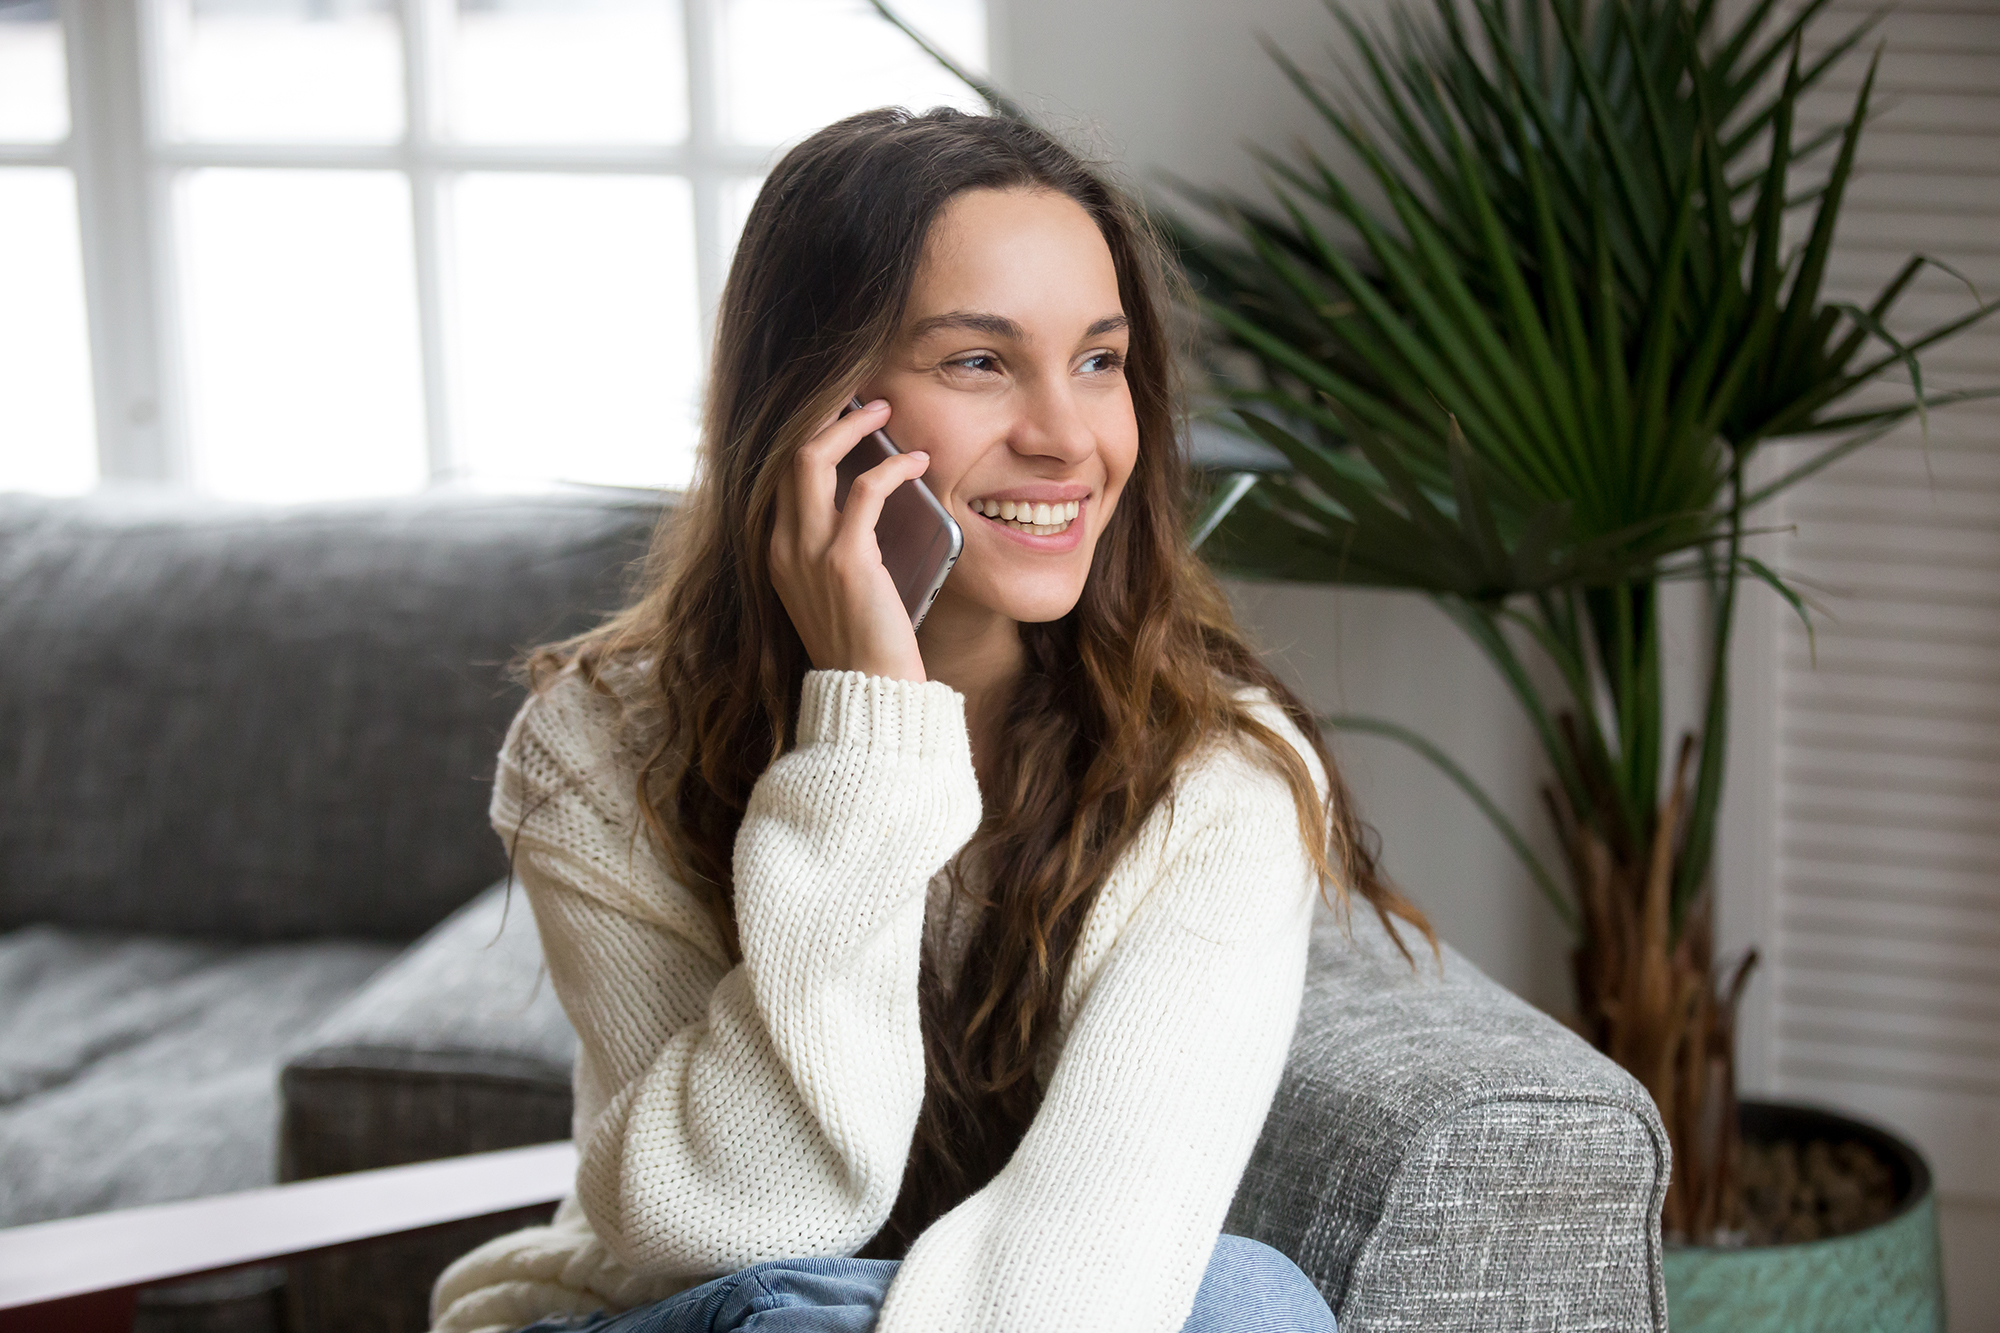 Happy woman on the phone. (Image: Shutterstock)